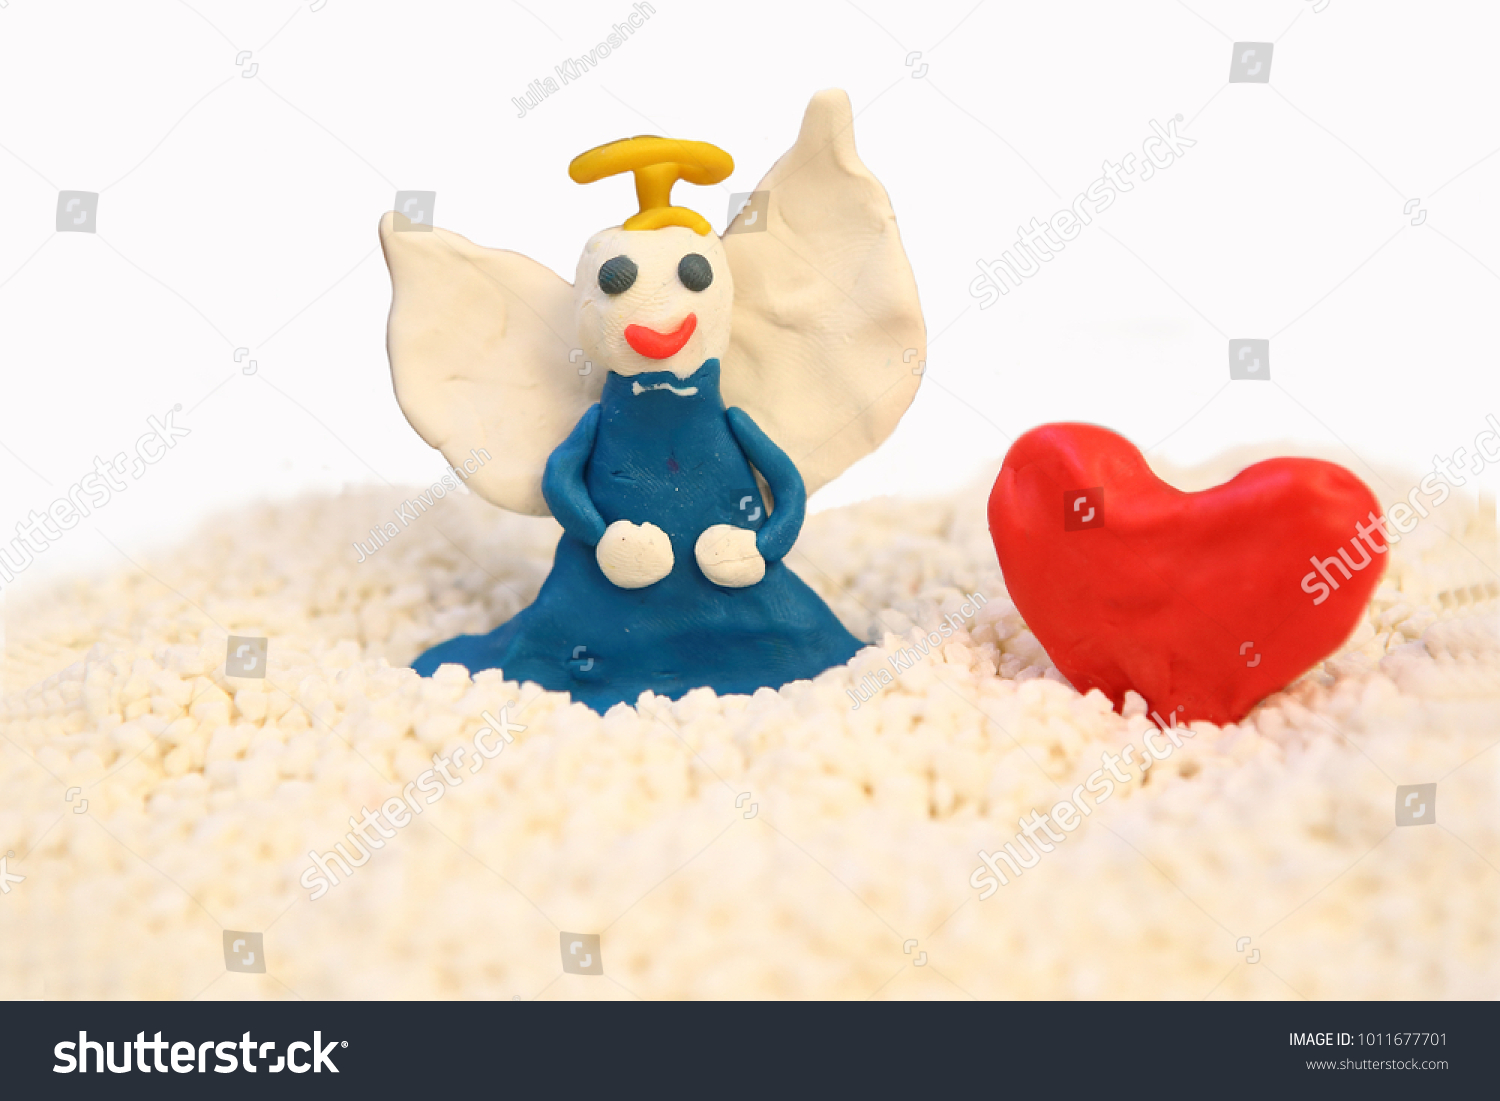 A handmade angel and red heart. Valentine's Day background. #1011677701